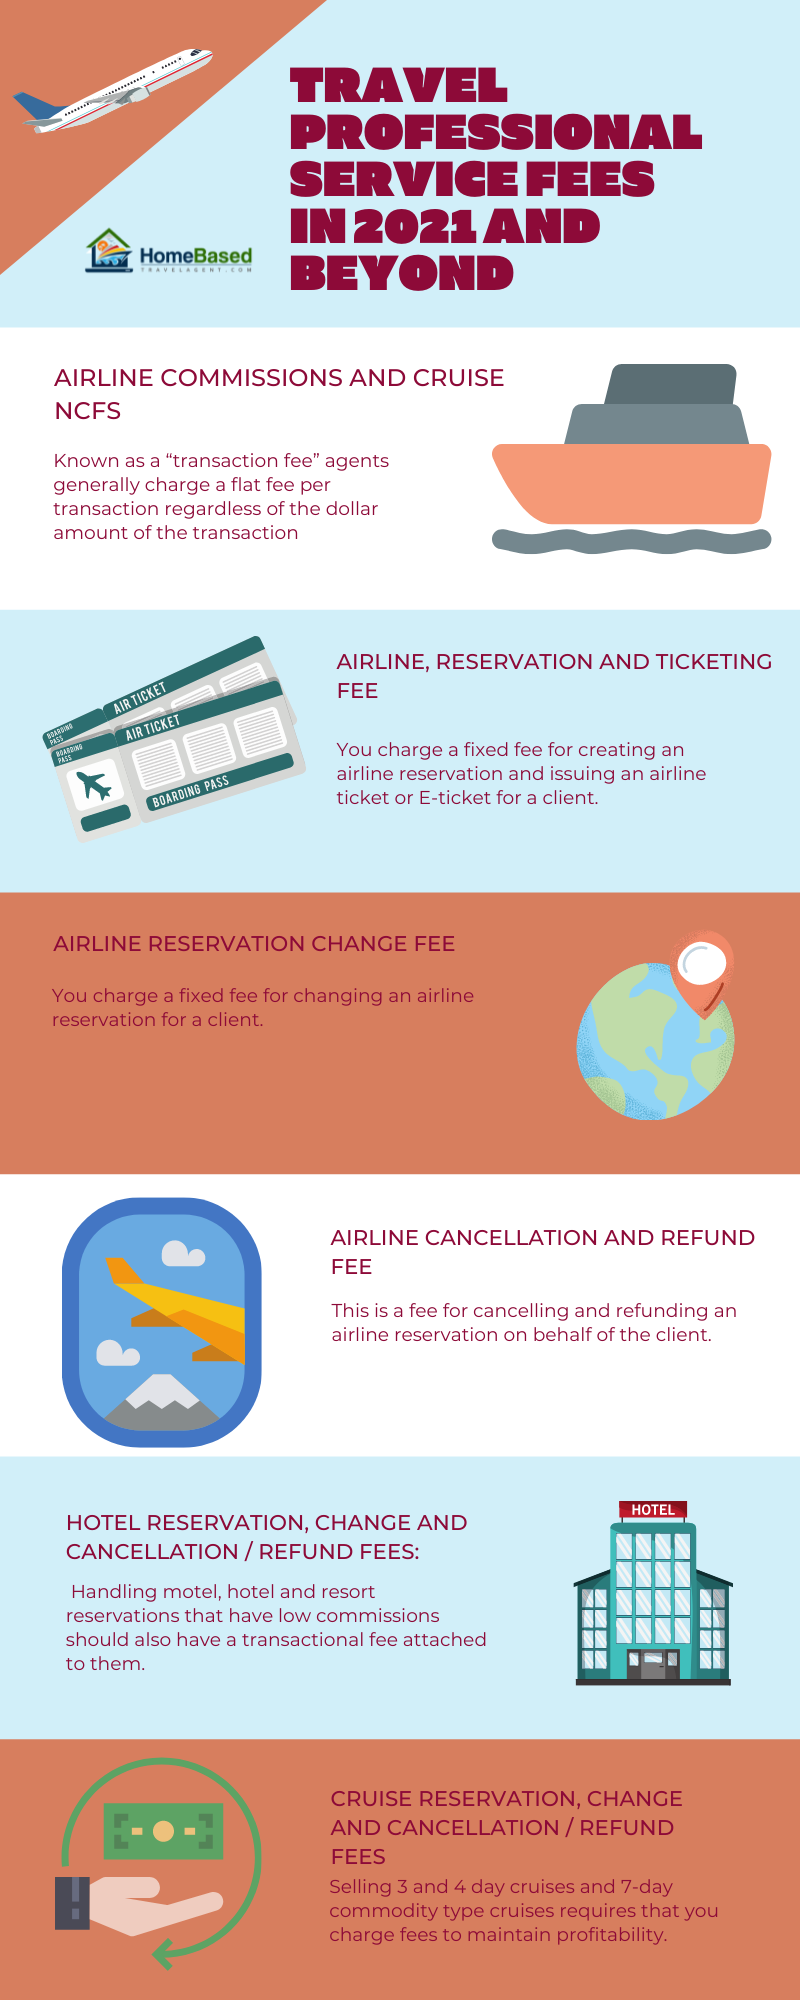 Travel Professional Service Fees in 2021 and Beyond (Infographic)